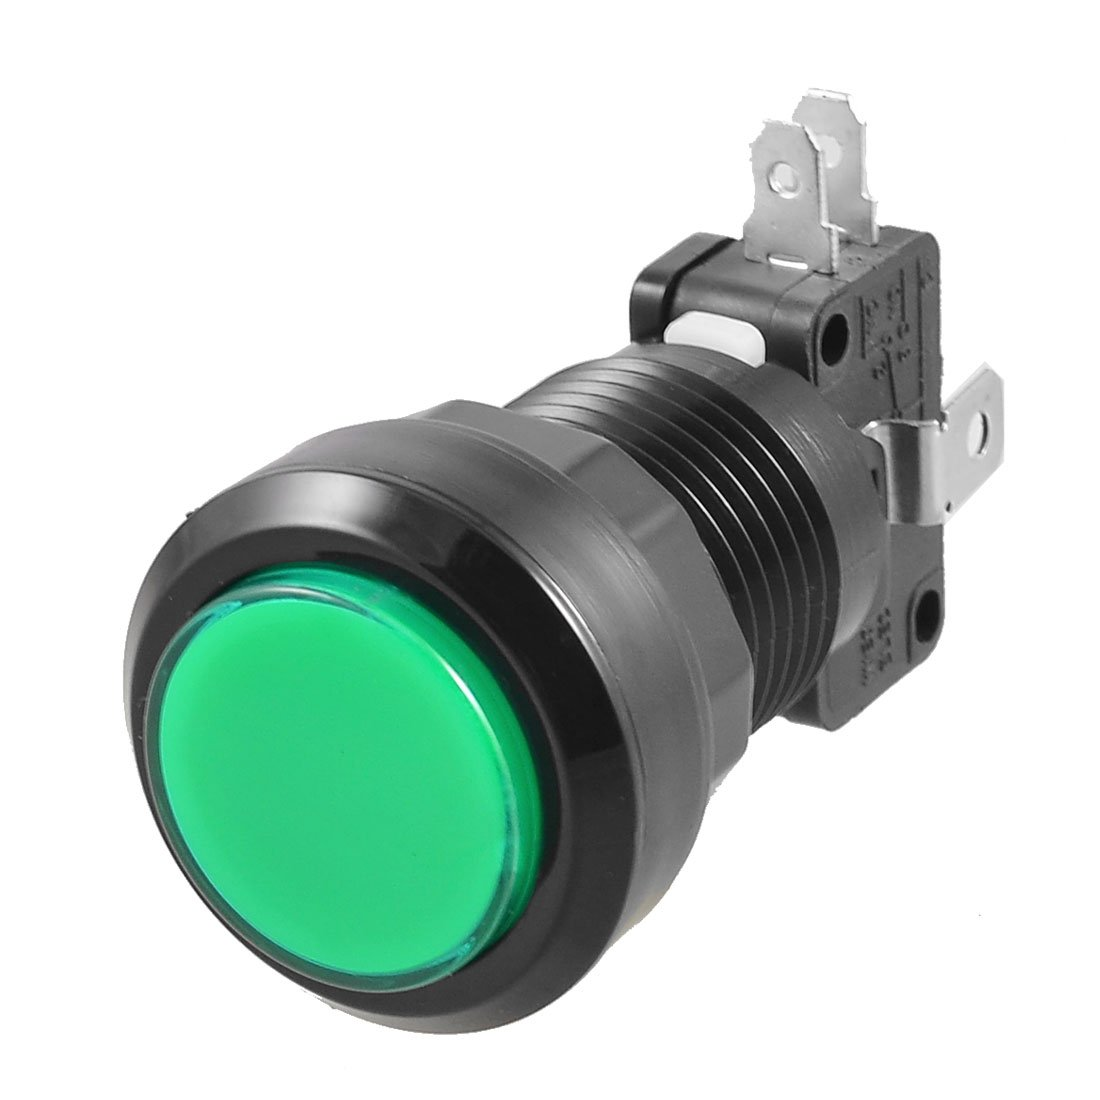 SZS Hot Green LED Lamp 24mm Dia Round Push Button w Limit Sw